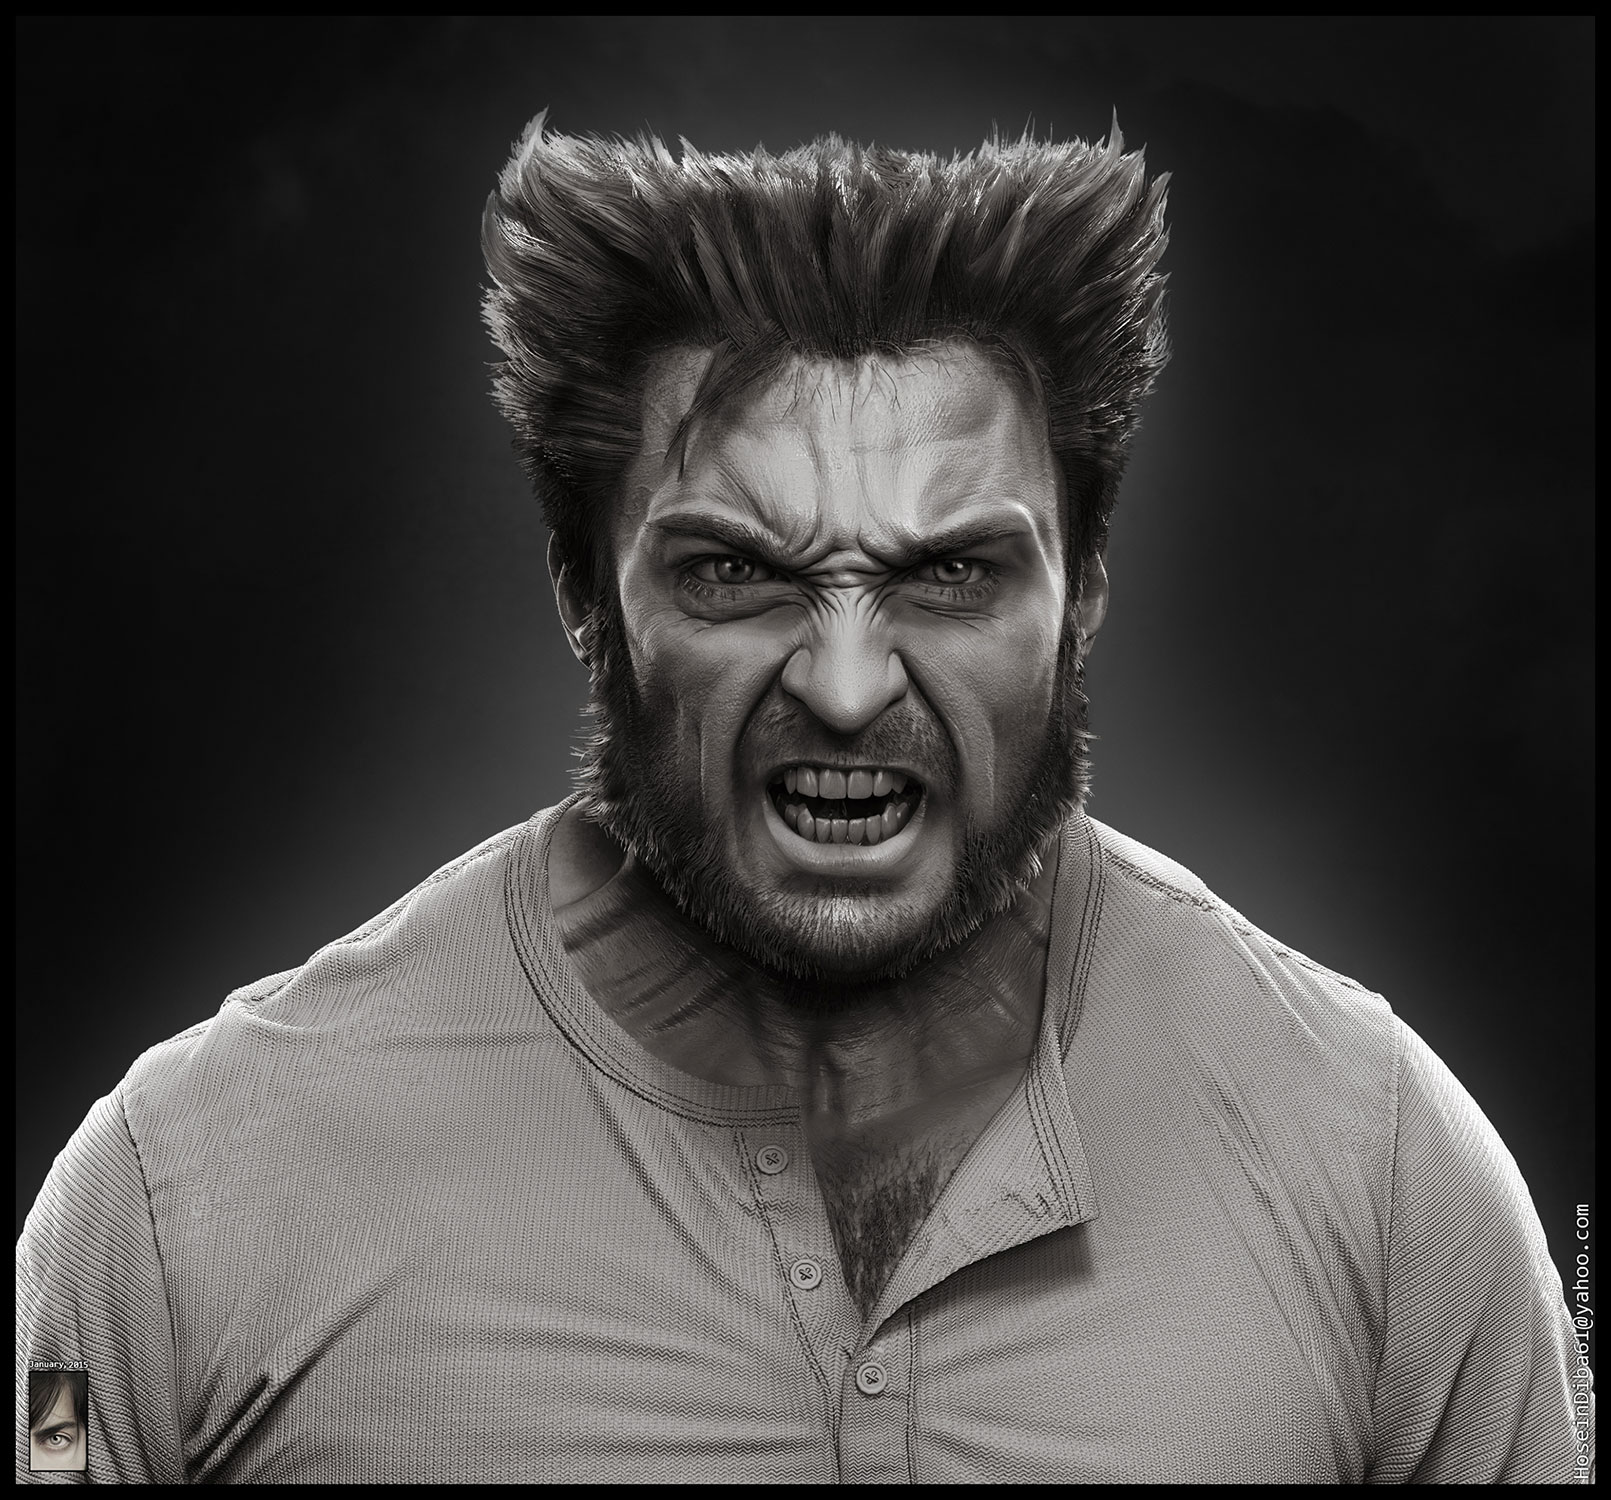 Making Of Wolverine Character With Zbrush By Hossein Diba